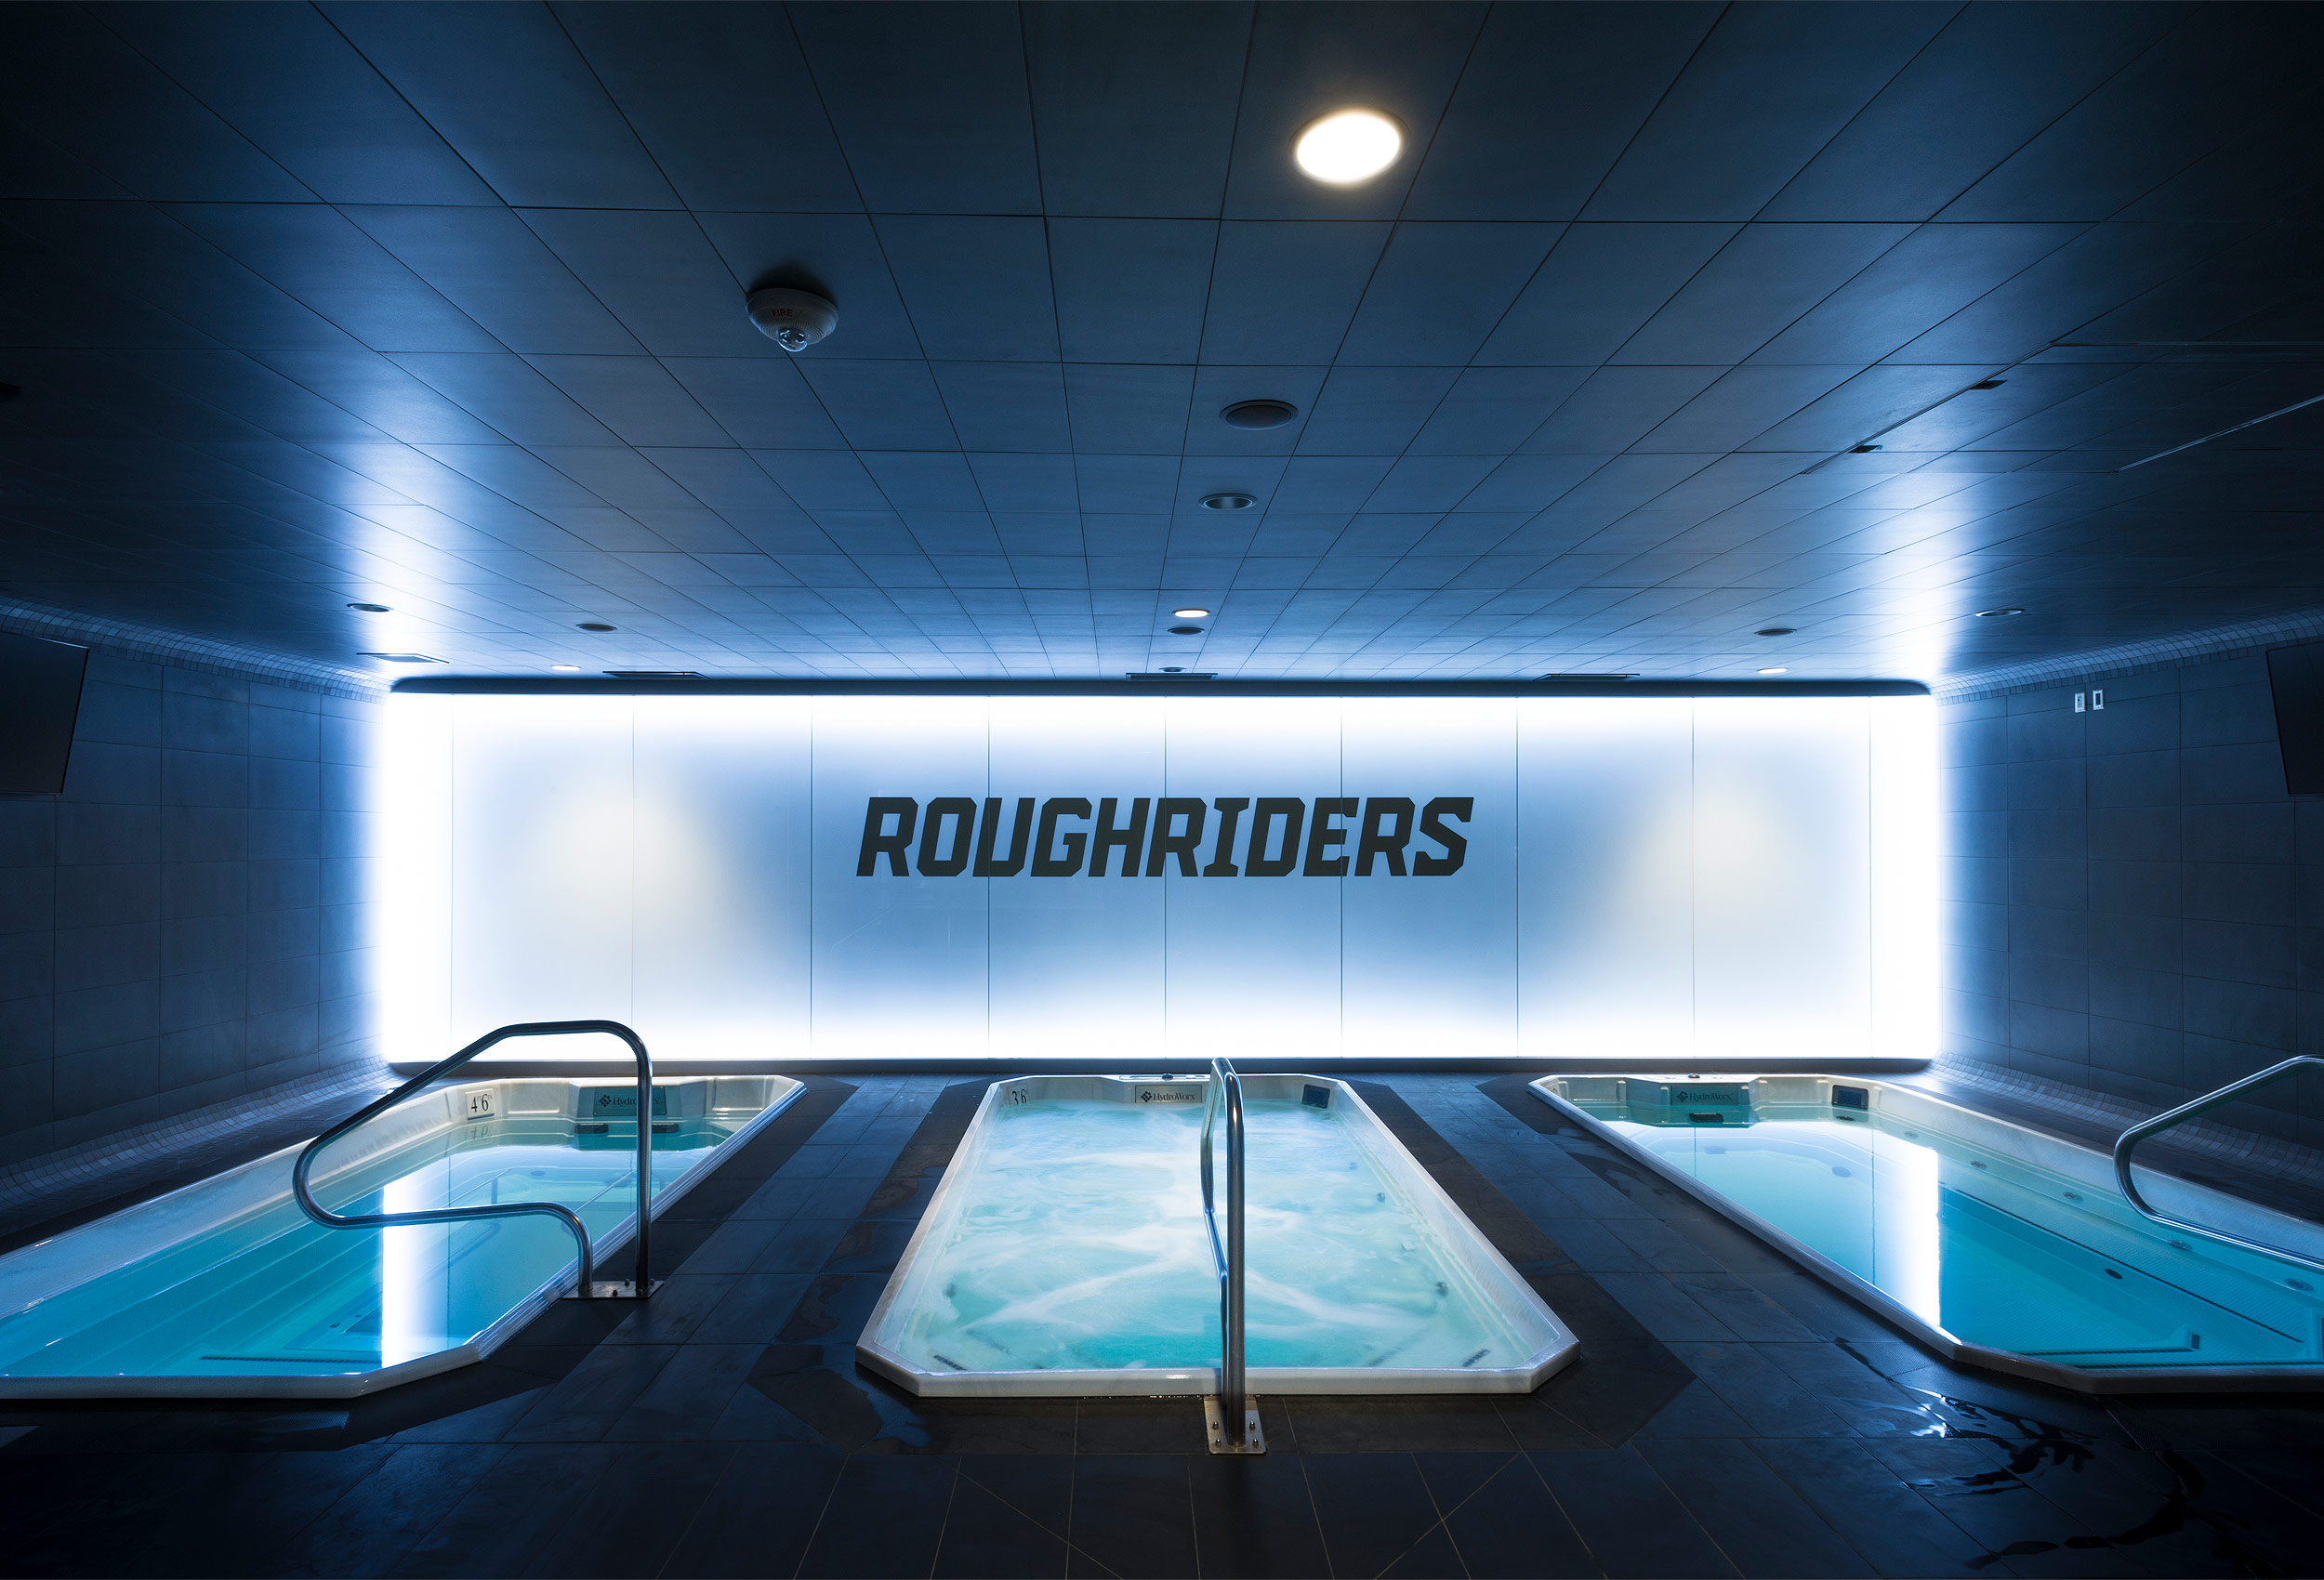 Saskatchewan Roughrider training room by architectural photographer Kristopher Grunert